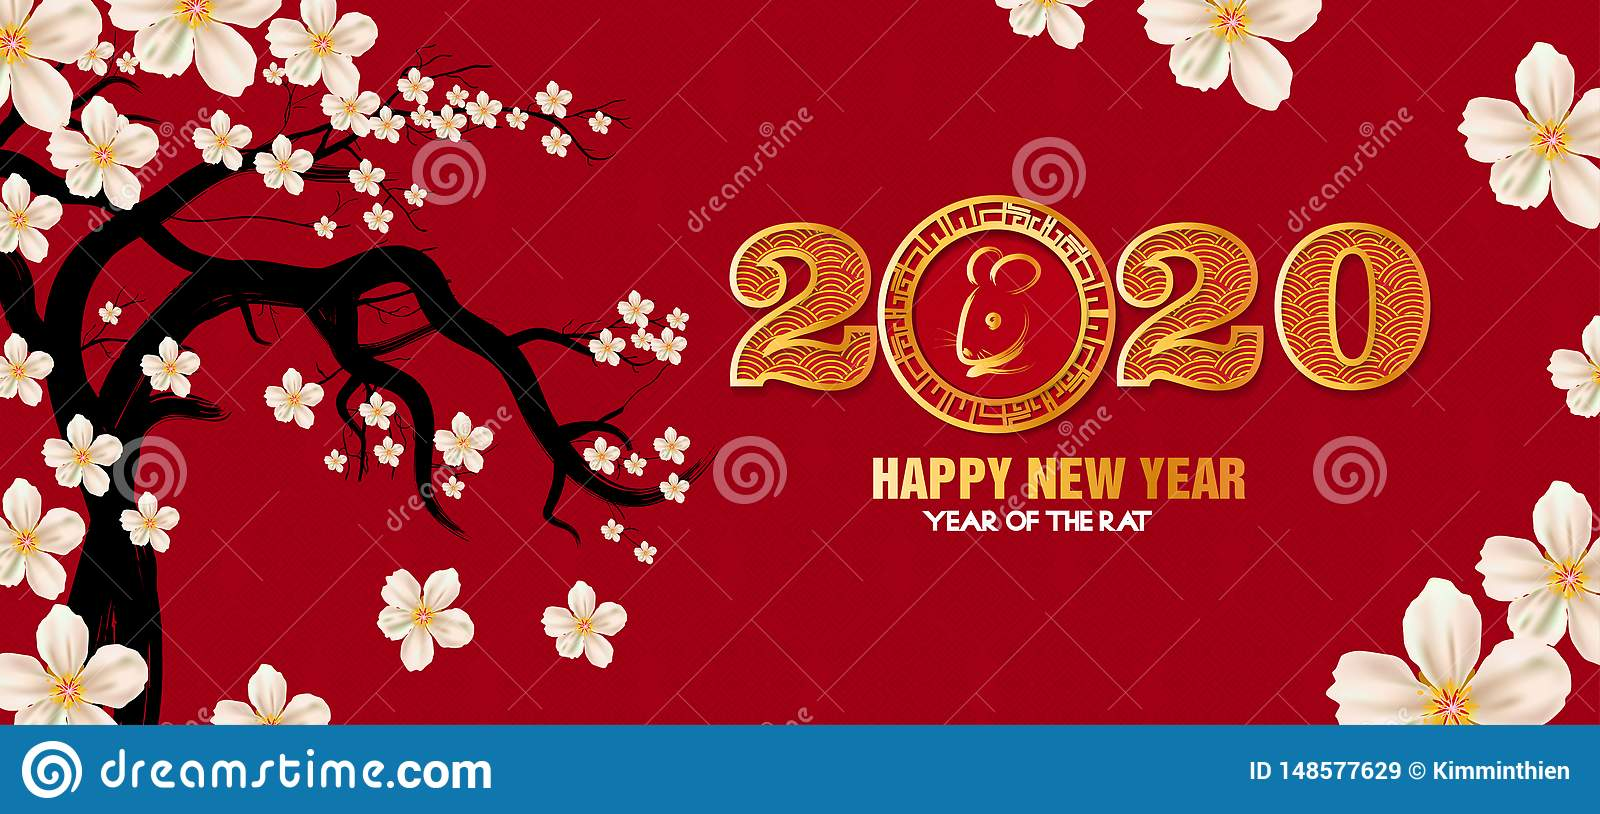 Happy New Year 2020, Merry Christmas. Happy Chinese New Year 2020 Year Of  The Rat Stock Image - Image of festive, december: 148577629